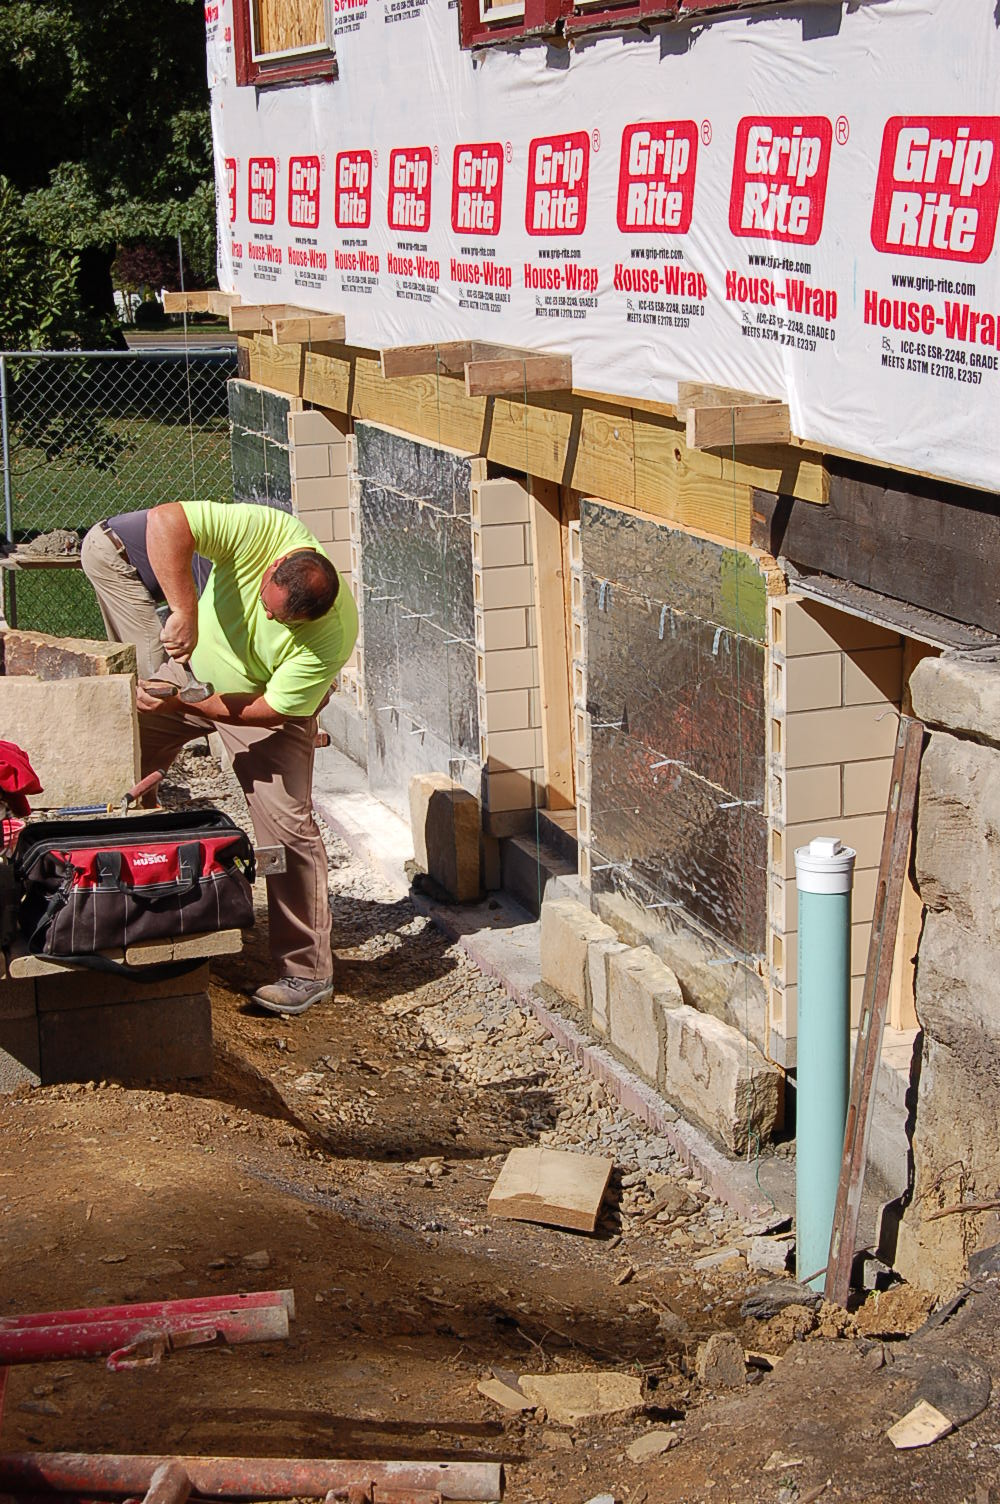 Stone work begins 9/21/15. Stone is cut to give it an aged look and to help blend in with the existing structure.